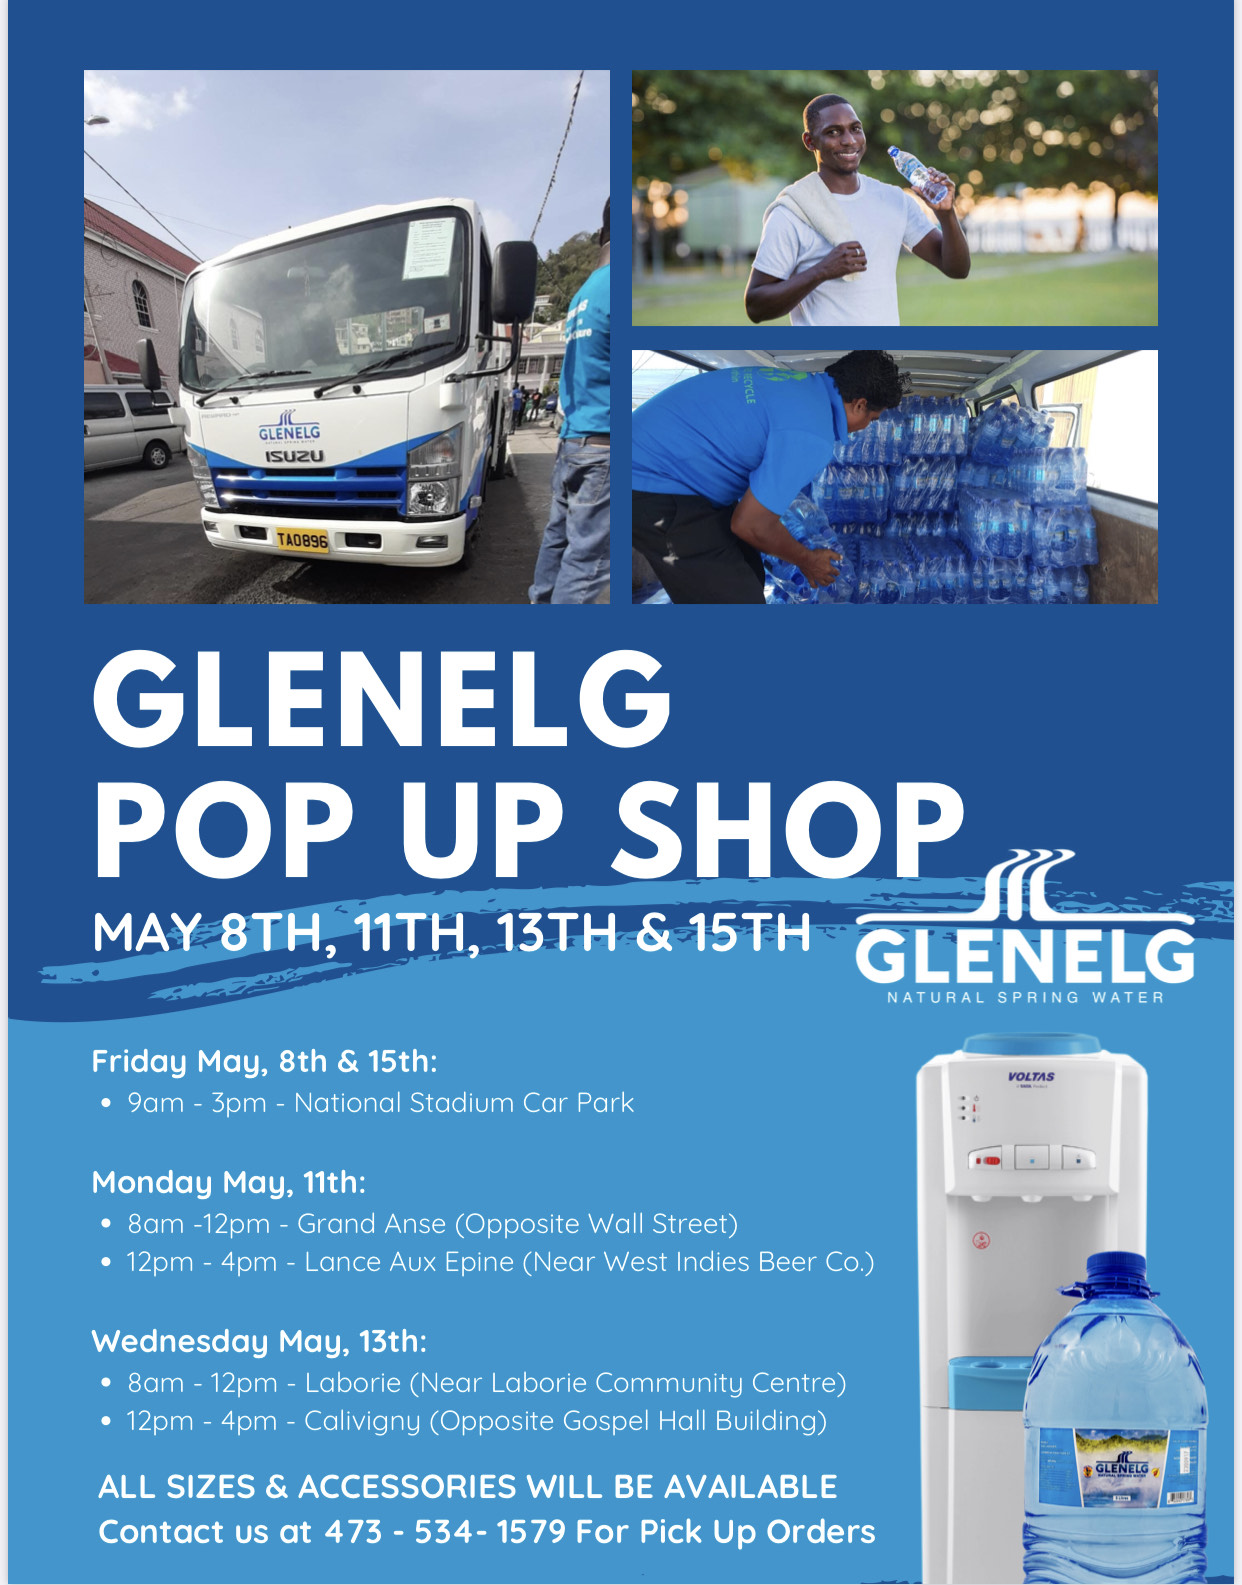 Glenelg Pop Up Shop